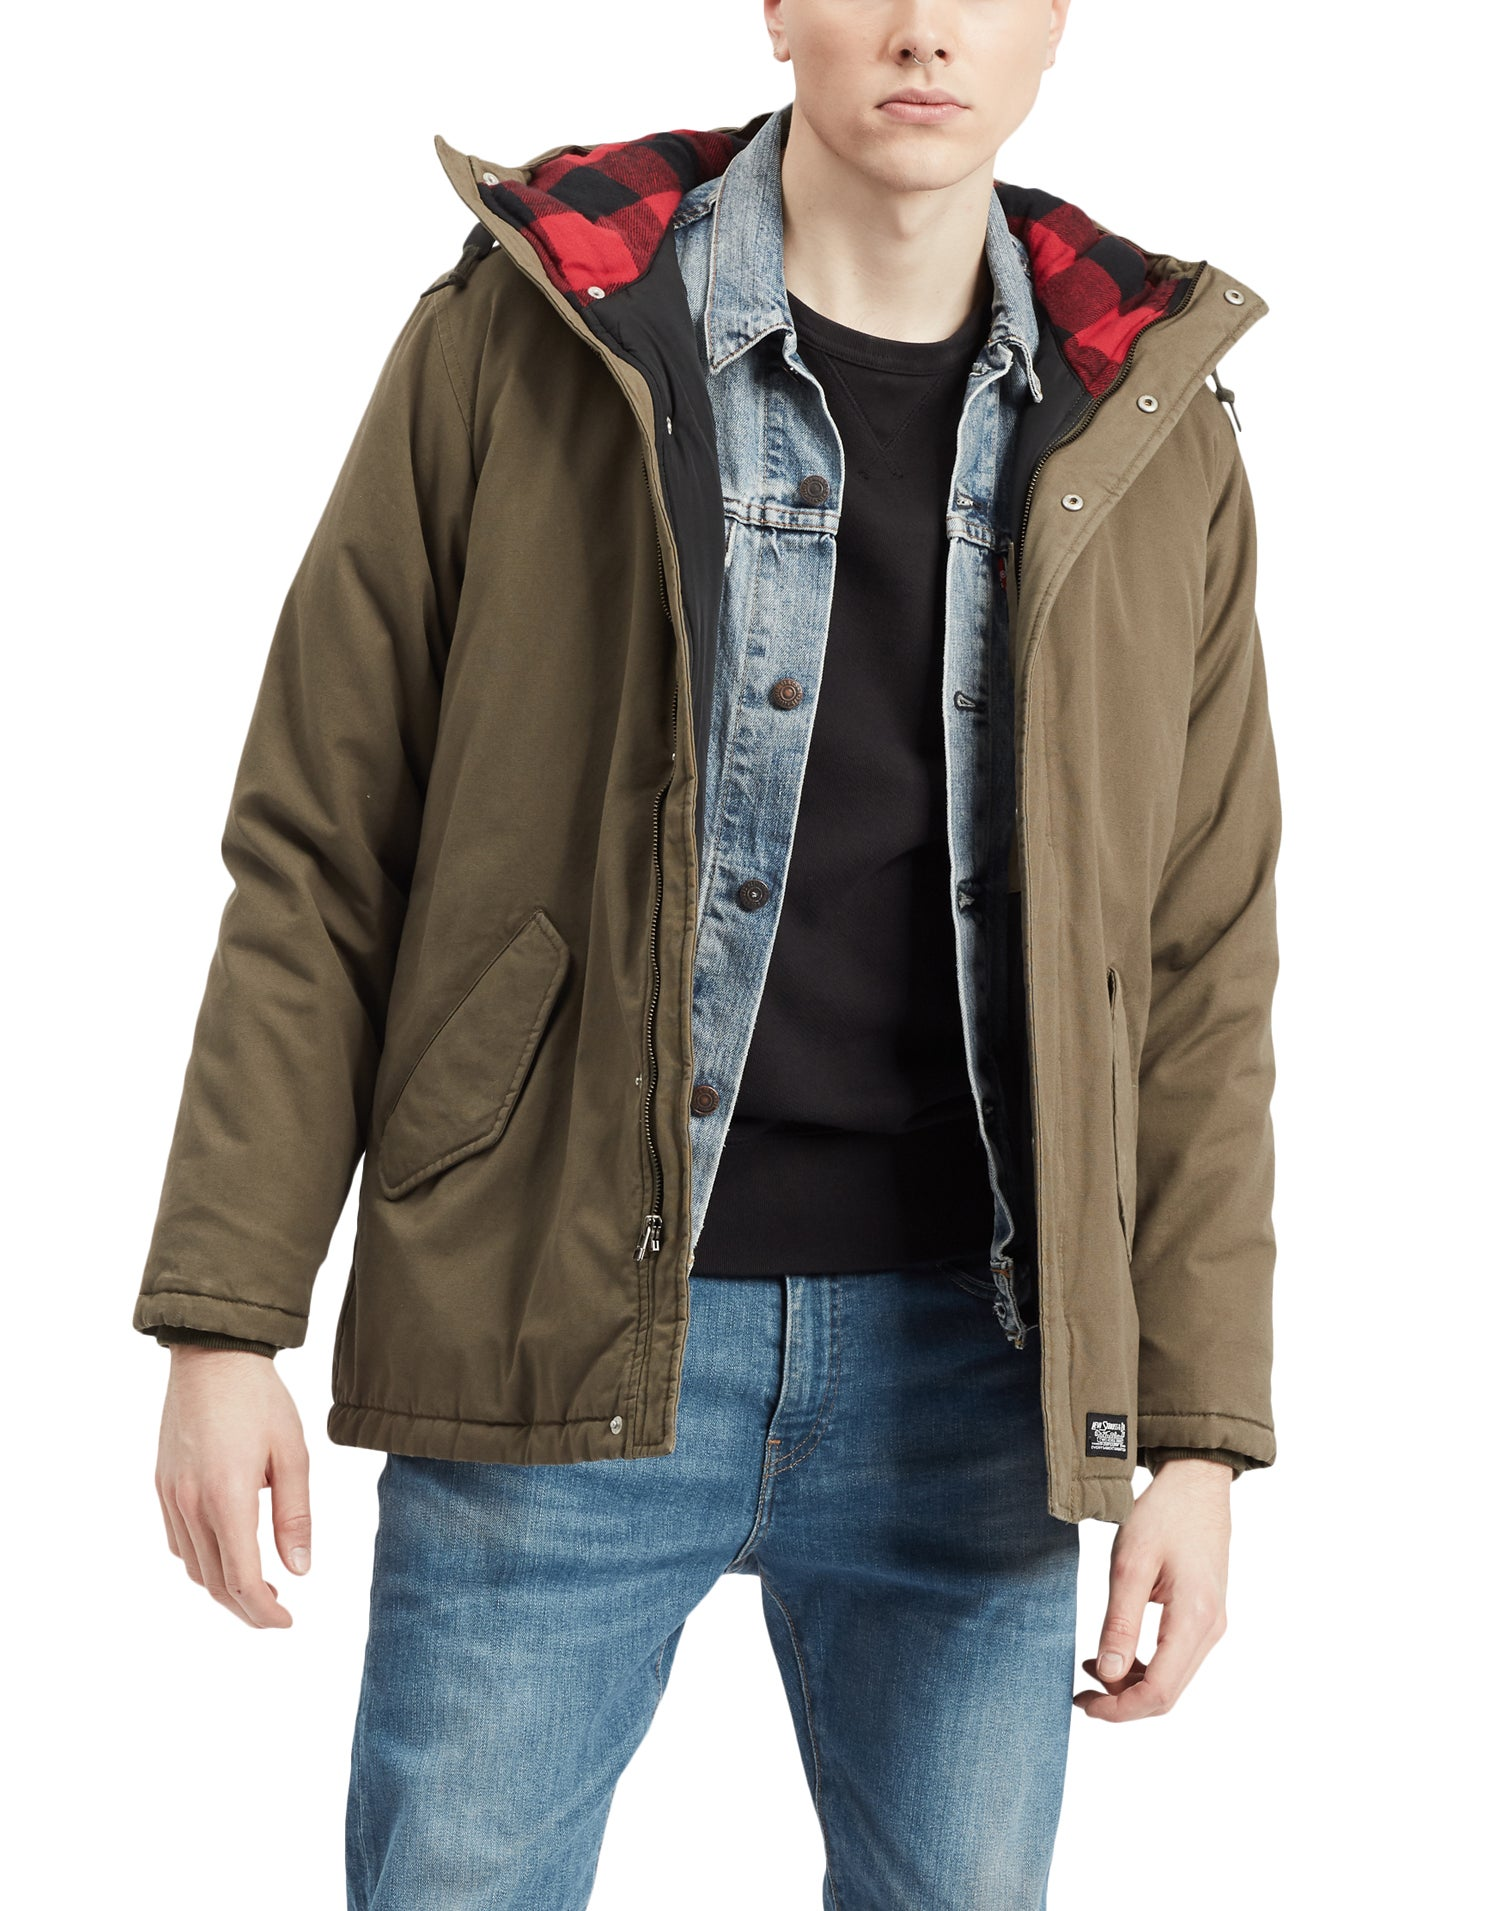 fabf26f9d Levis Thermore Padded Parka Jacket - Olive Night 2 | Country Attire